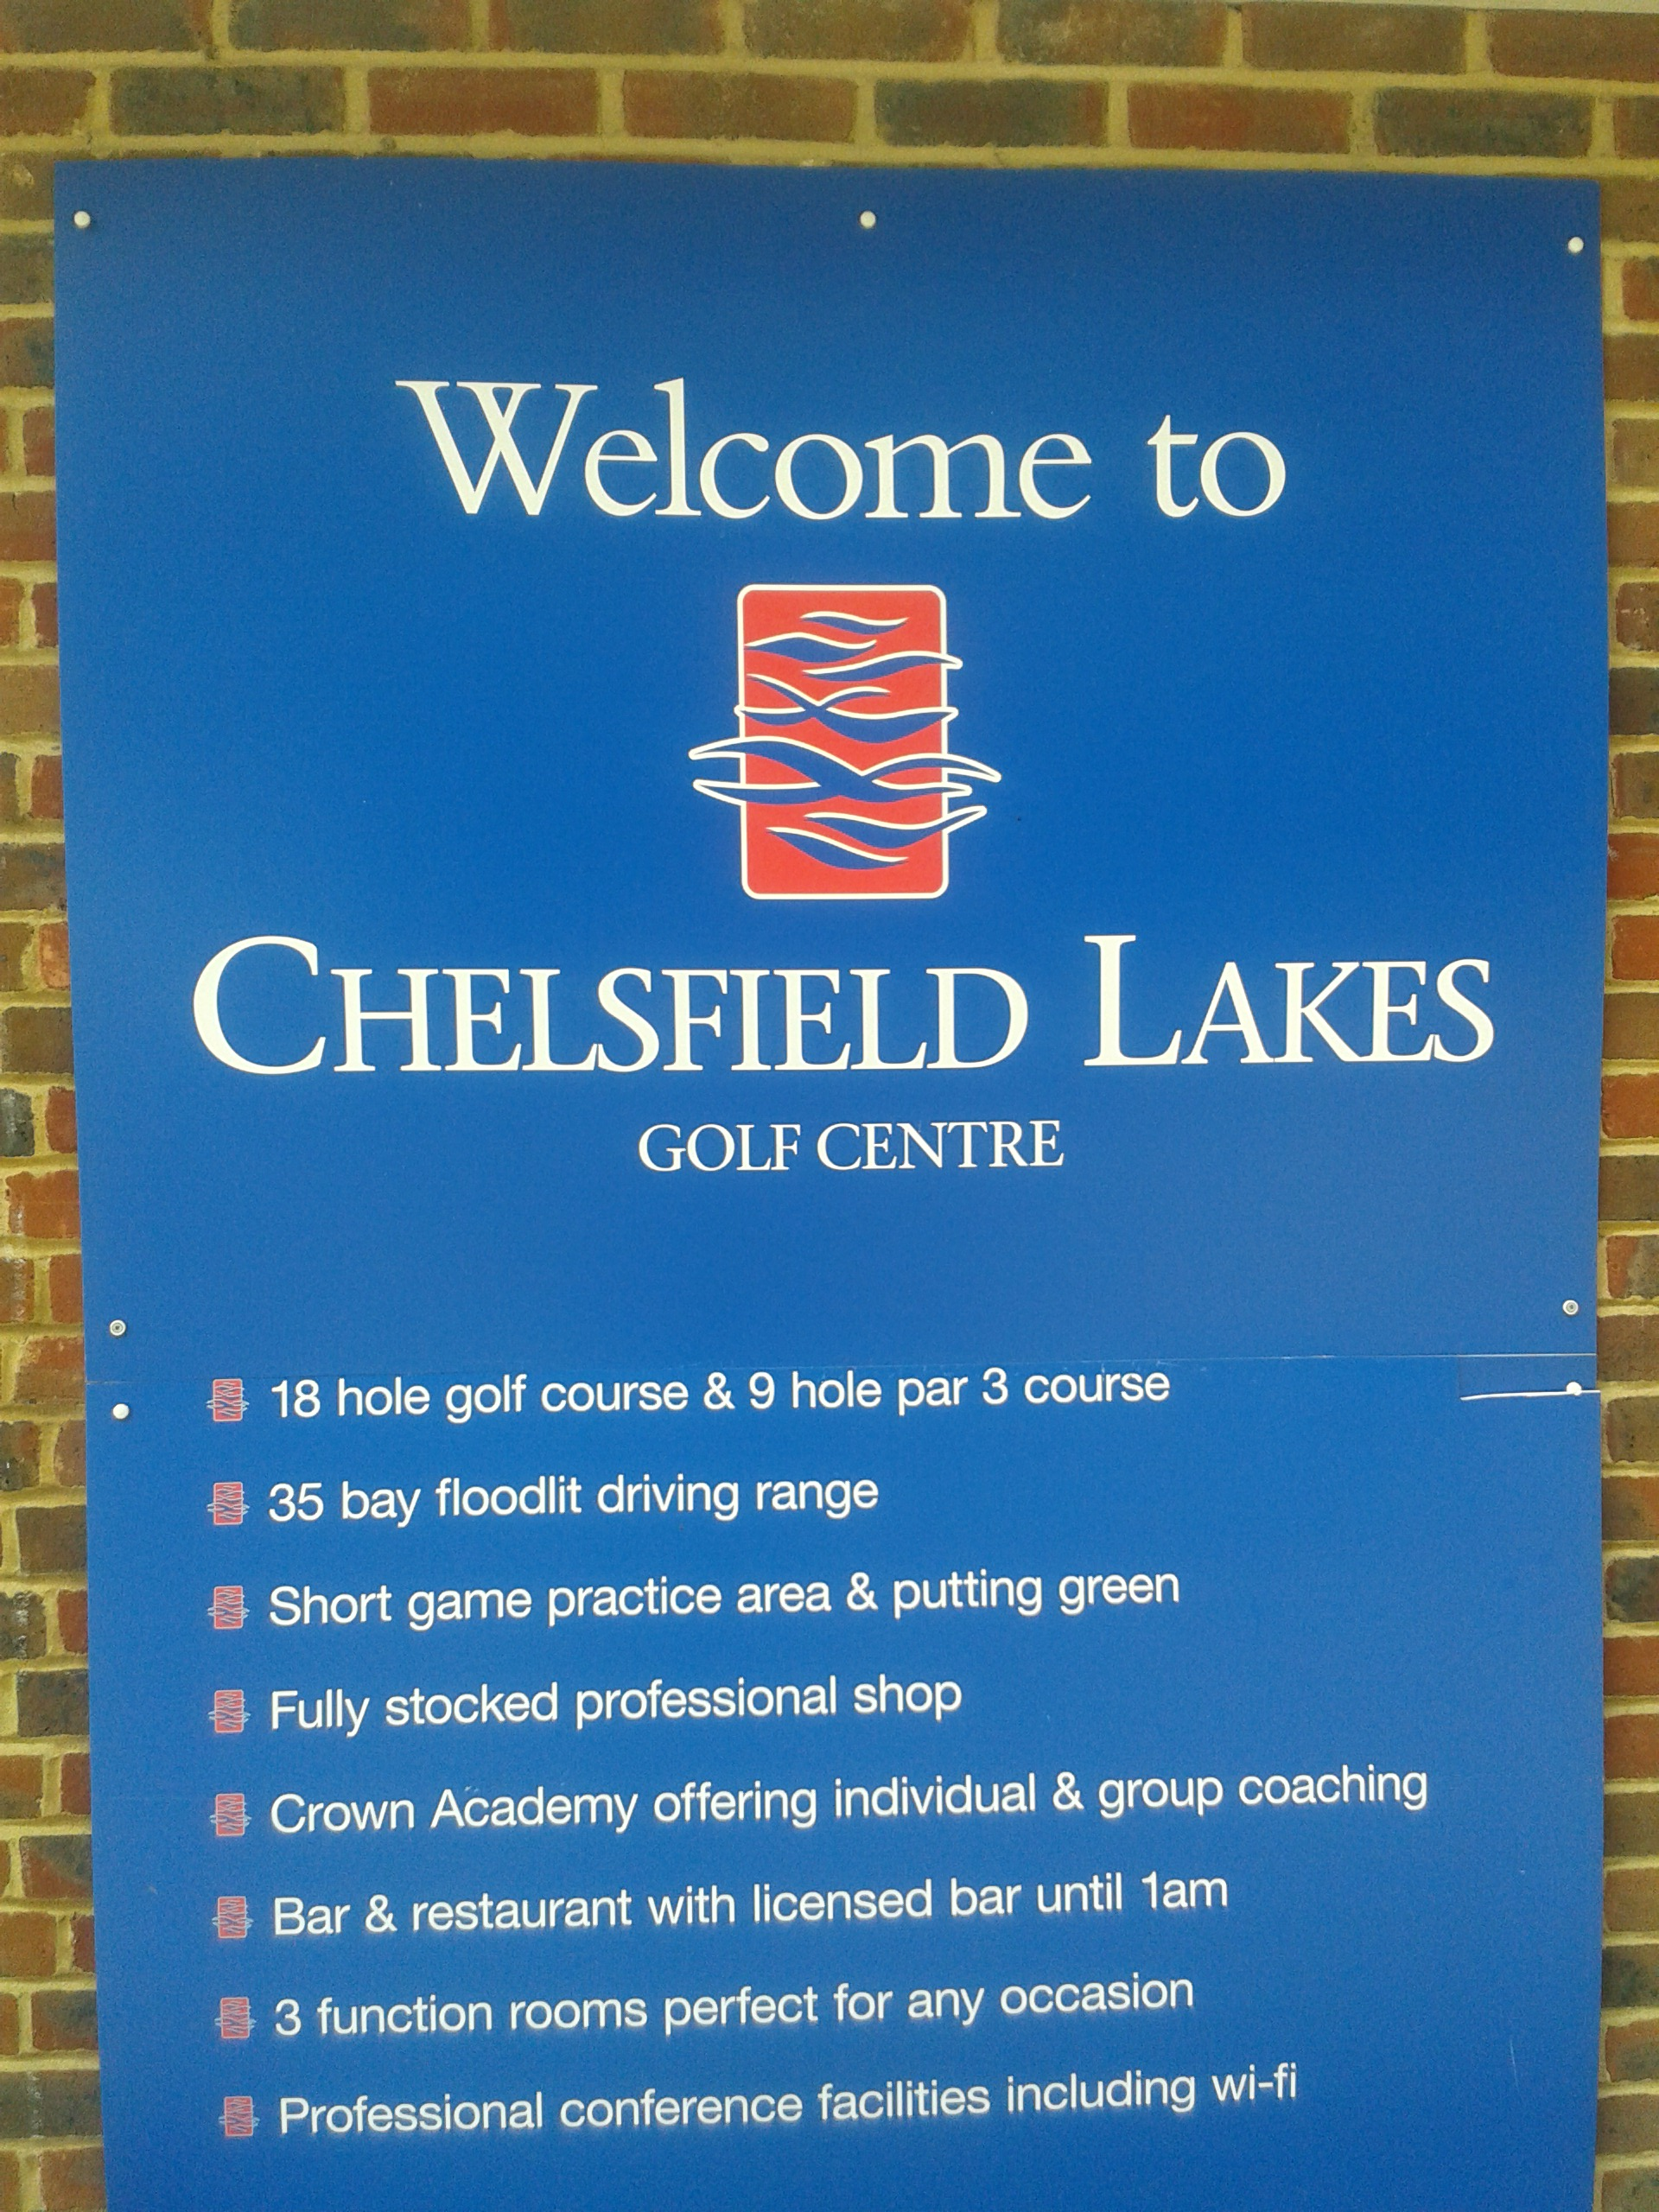 News Shopper: Chelsfield Lakes Golf